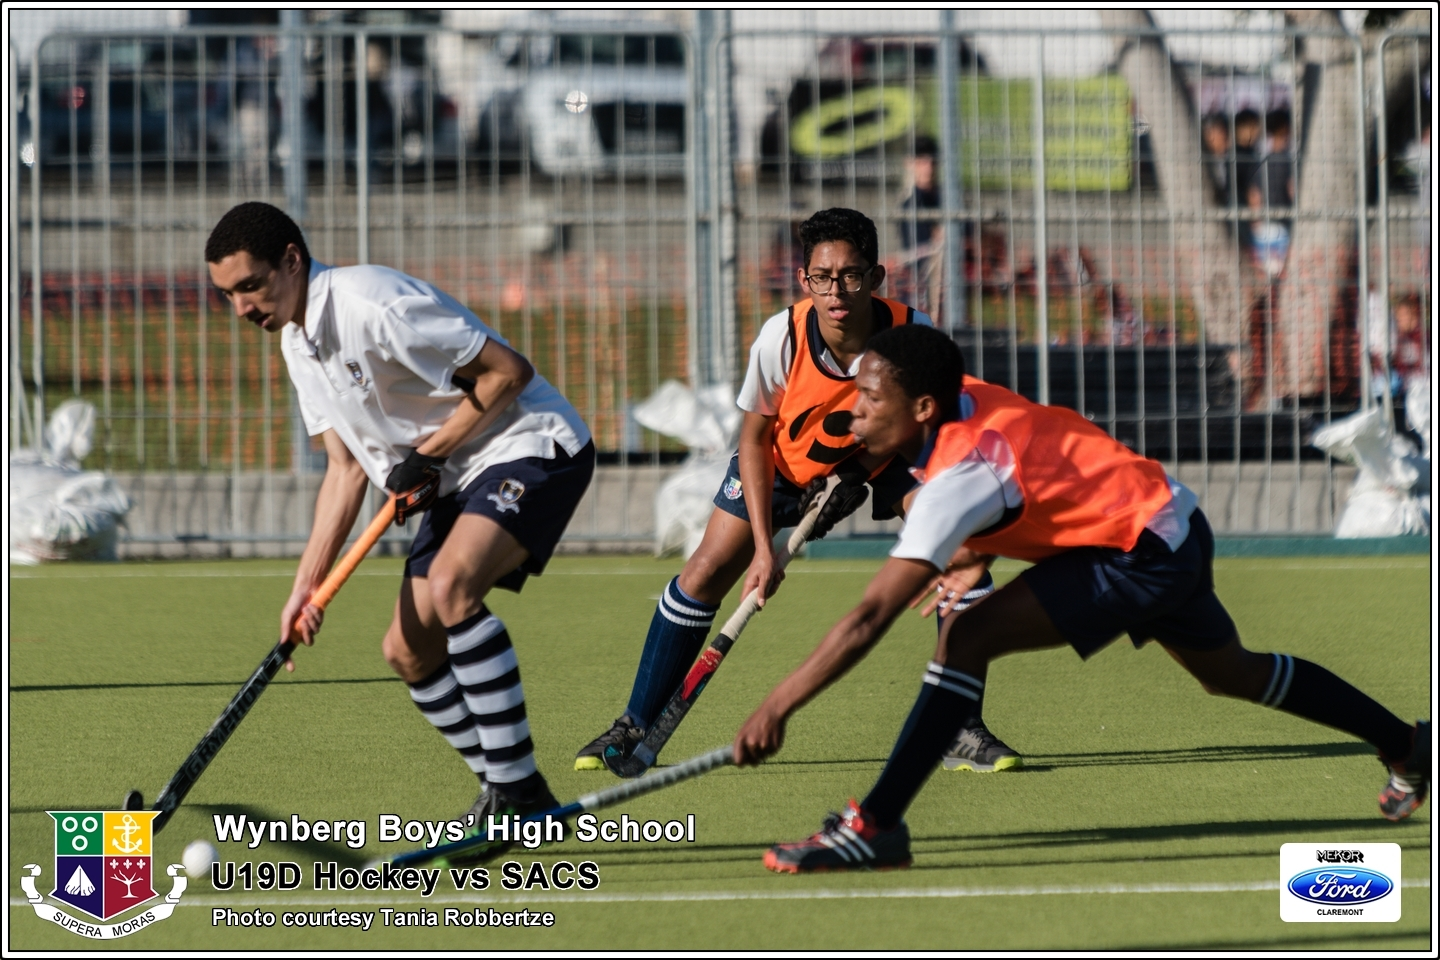 U19D vs SACS, Friday 24 August 2018